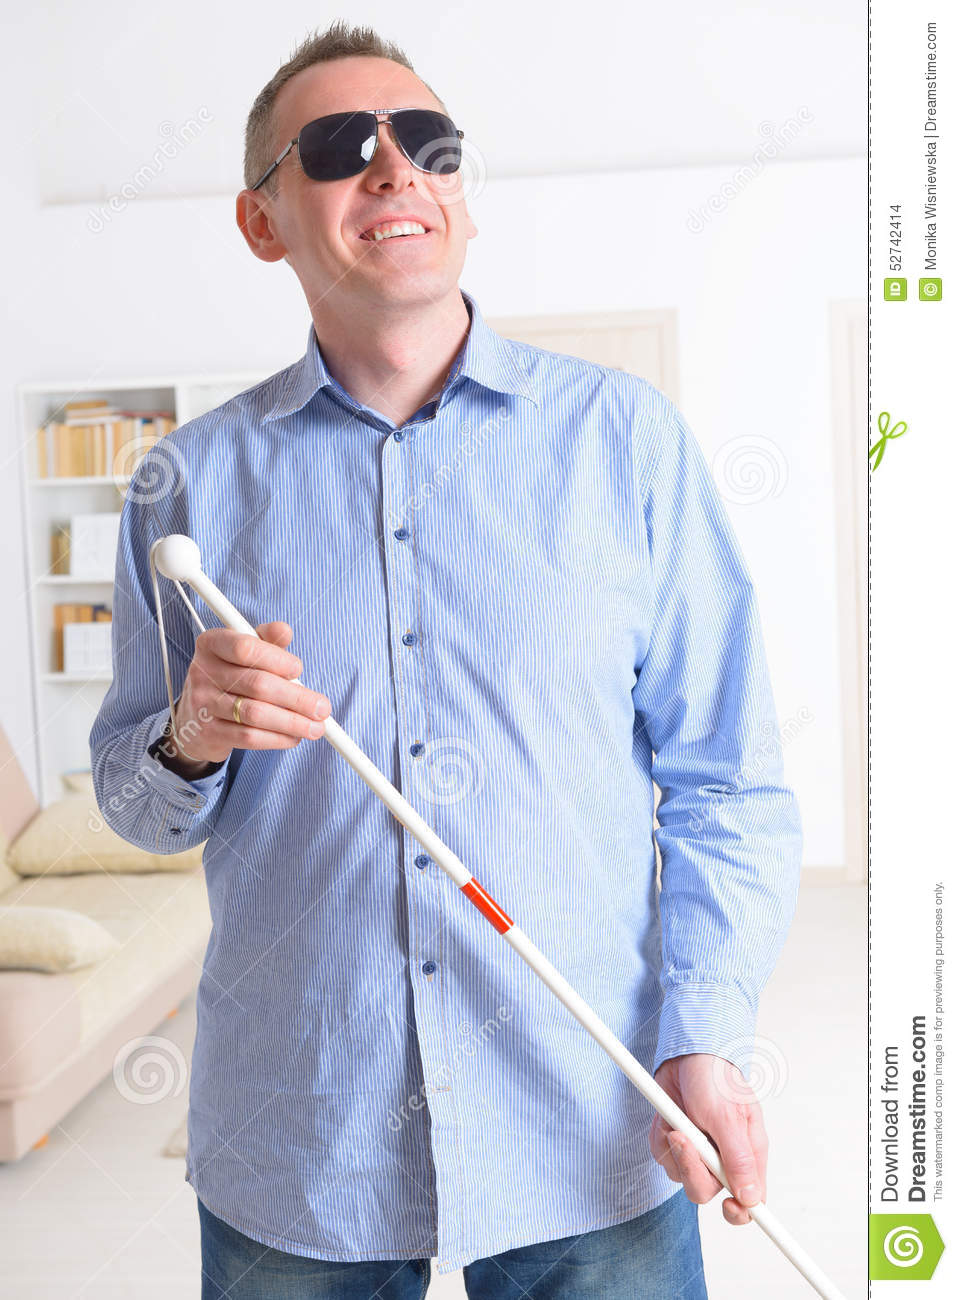 Blind man with white stick and dark glasses at home.